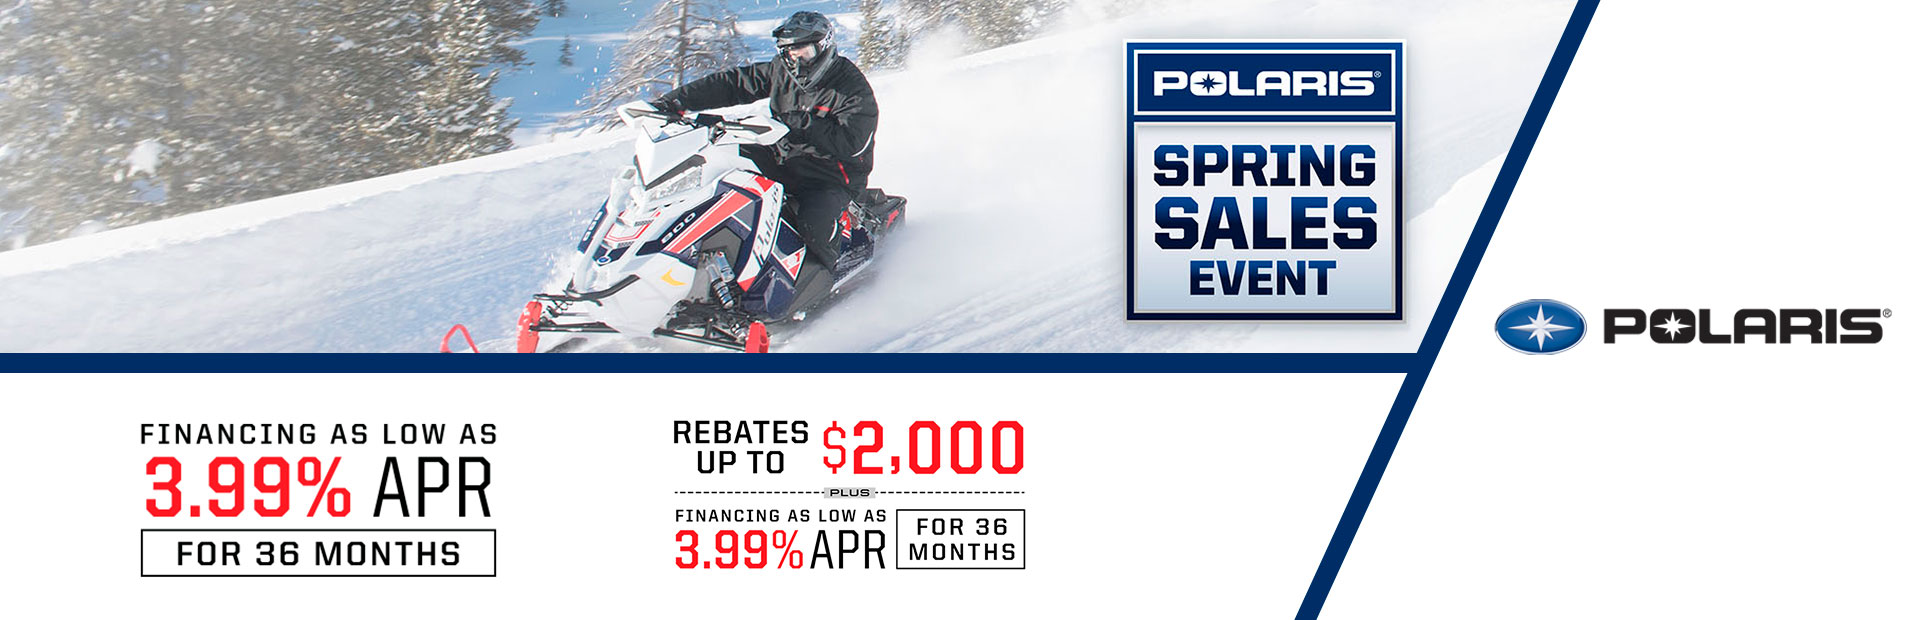 Polaris Snowmobiles Spring Sales Event